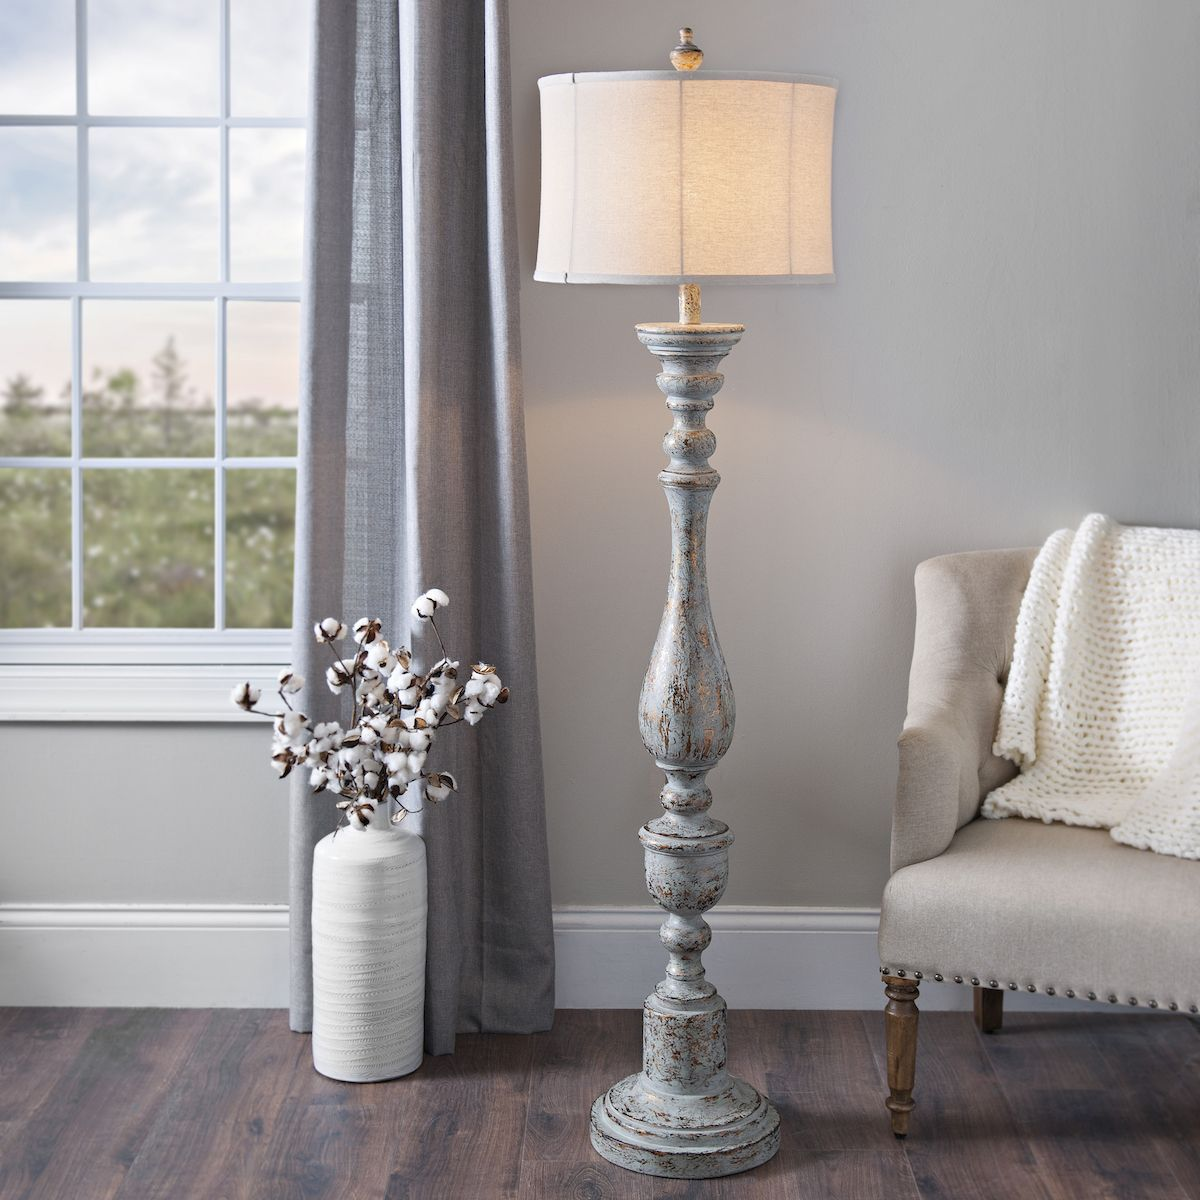 Distressed eloise floor lamp with images floor lamps